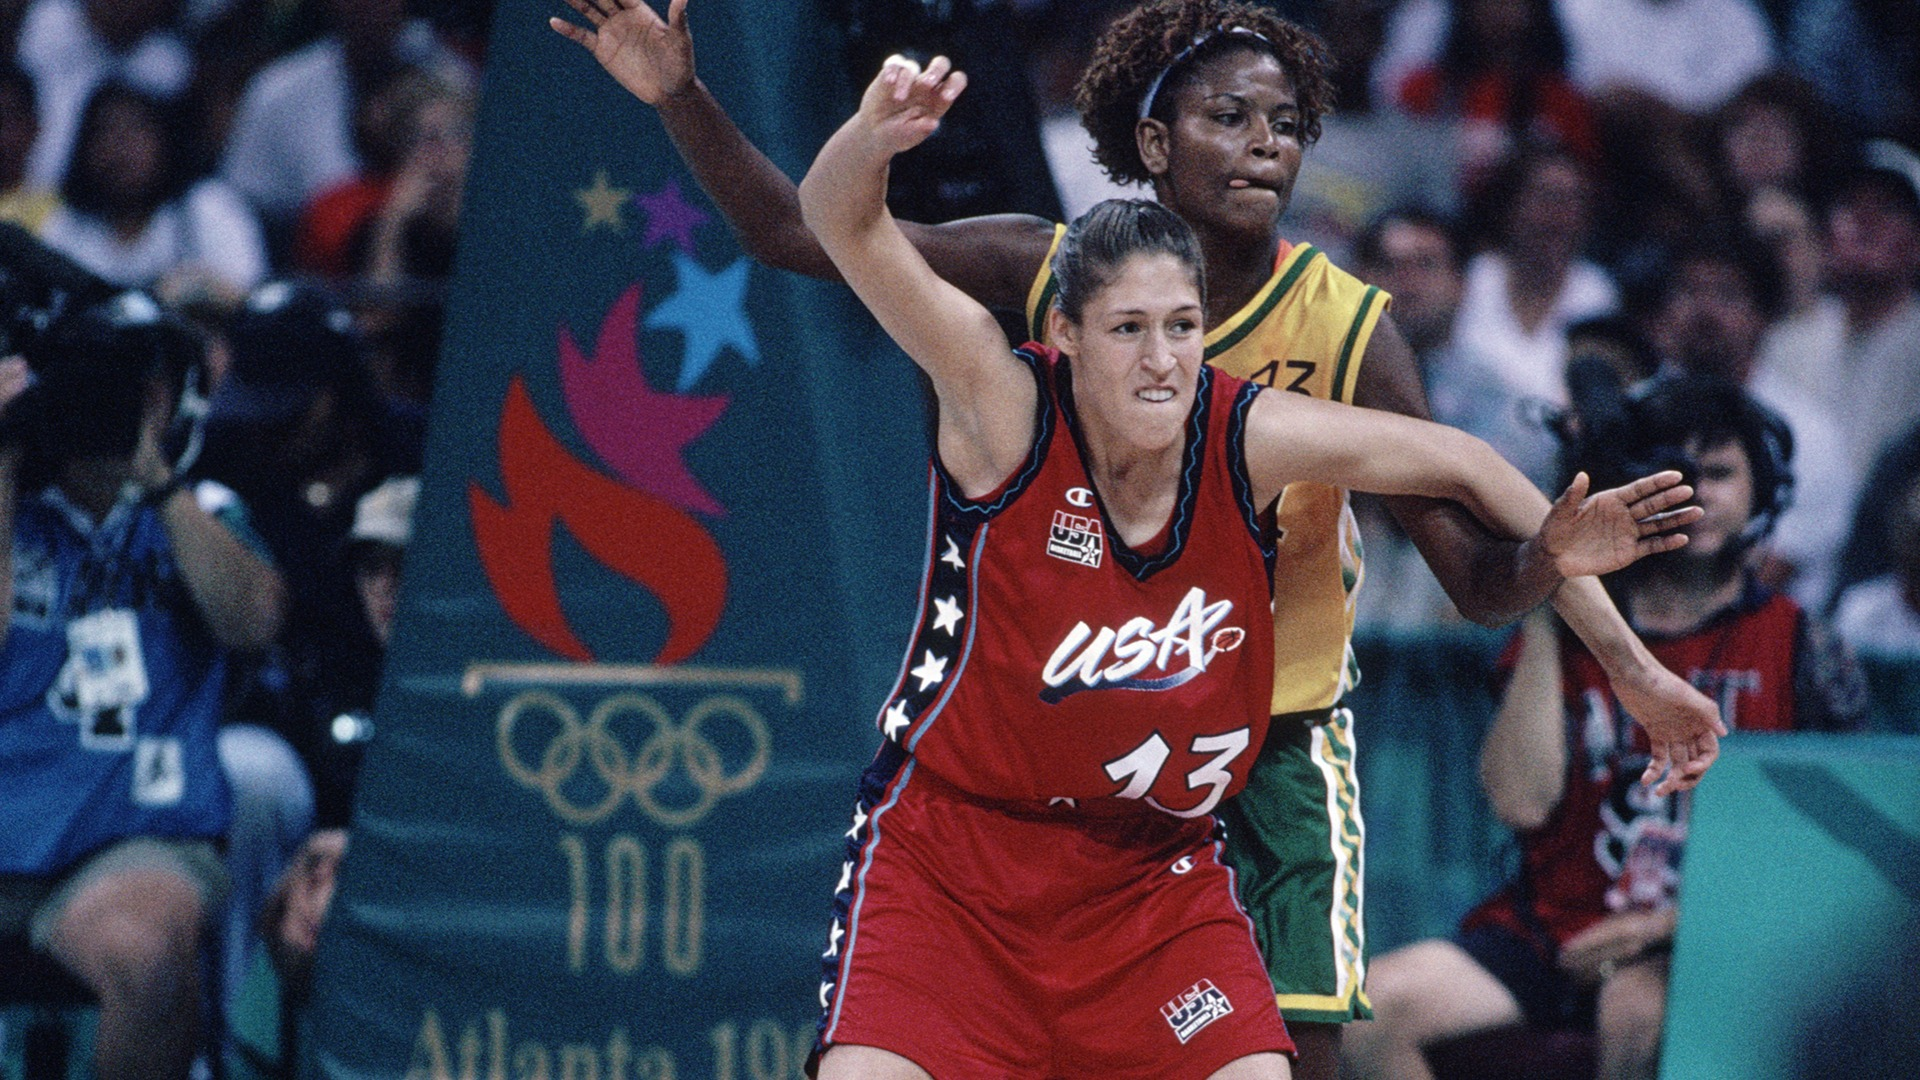 Rebecca Lobo posts up against a defender and waits to receive the ball